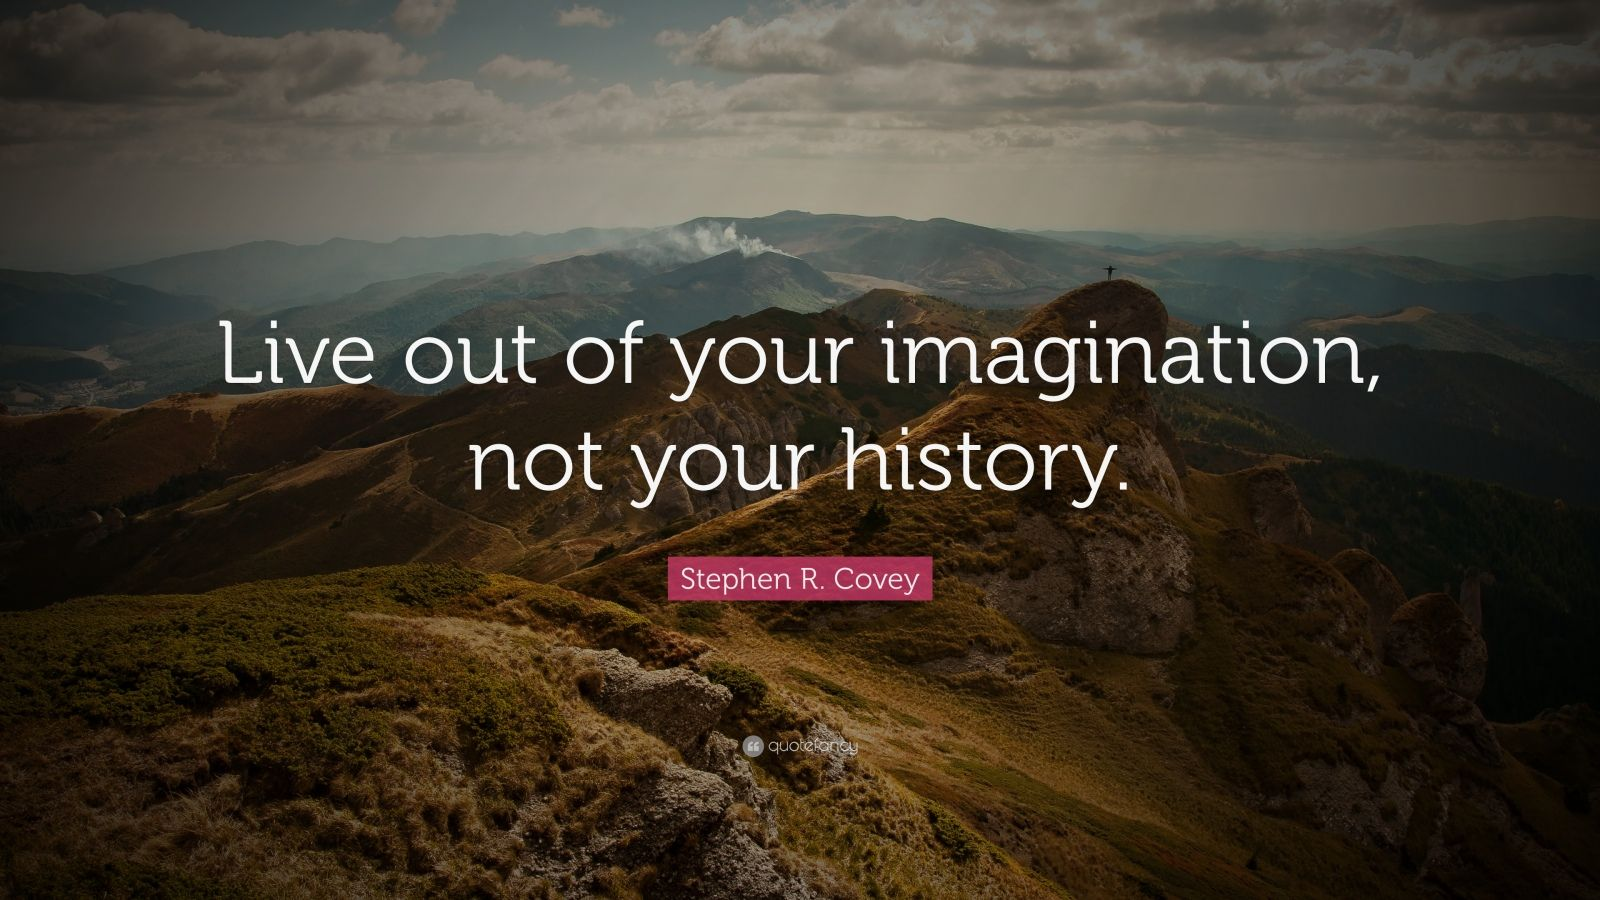 Stephen R Covey Quote Live Out Of Your Imagination Not